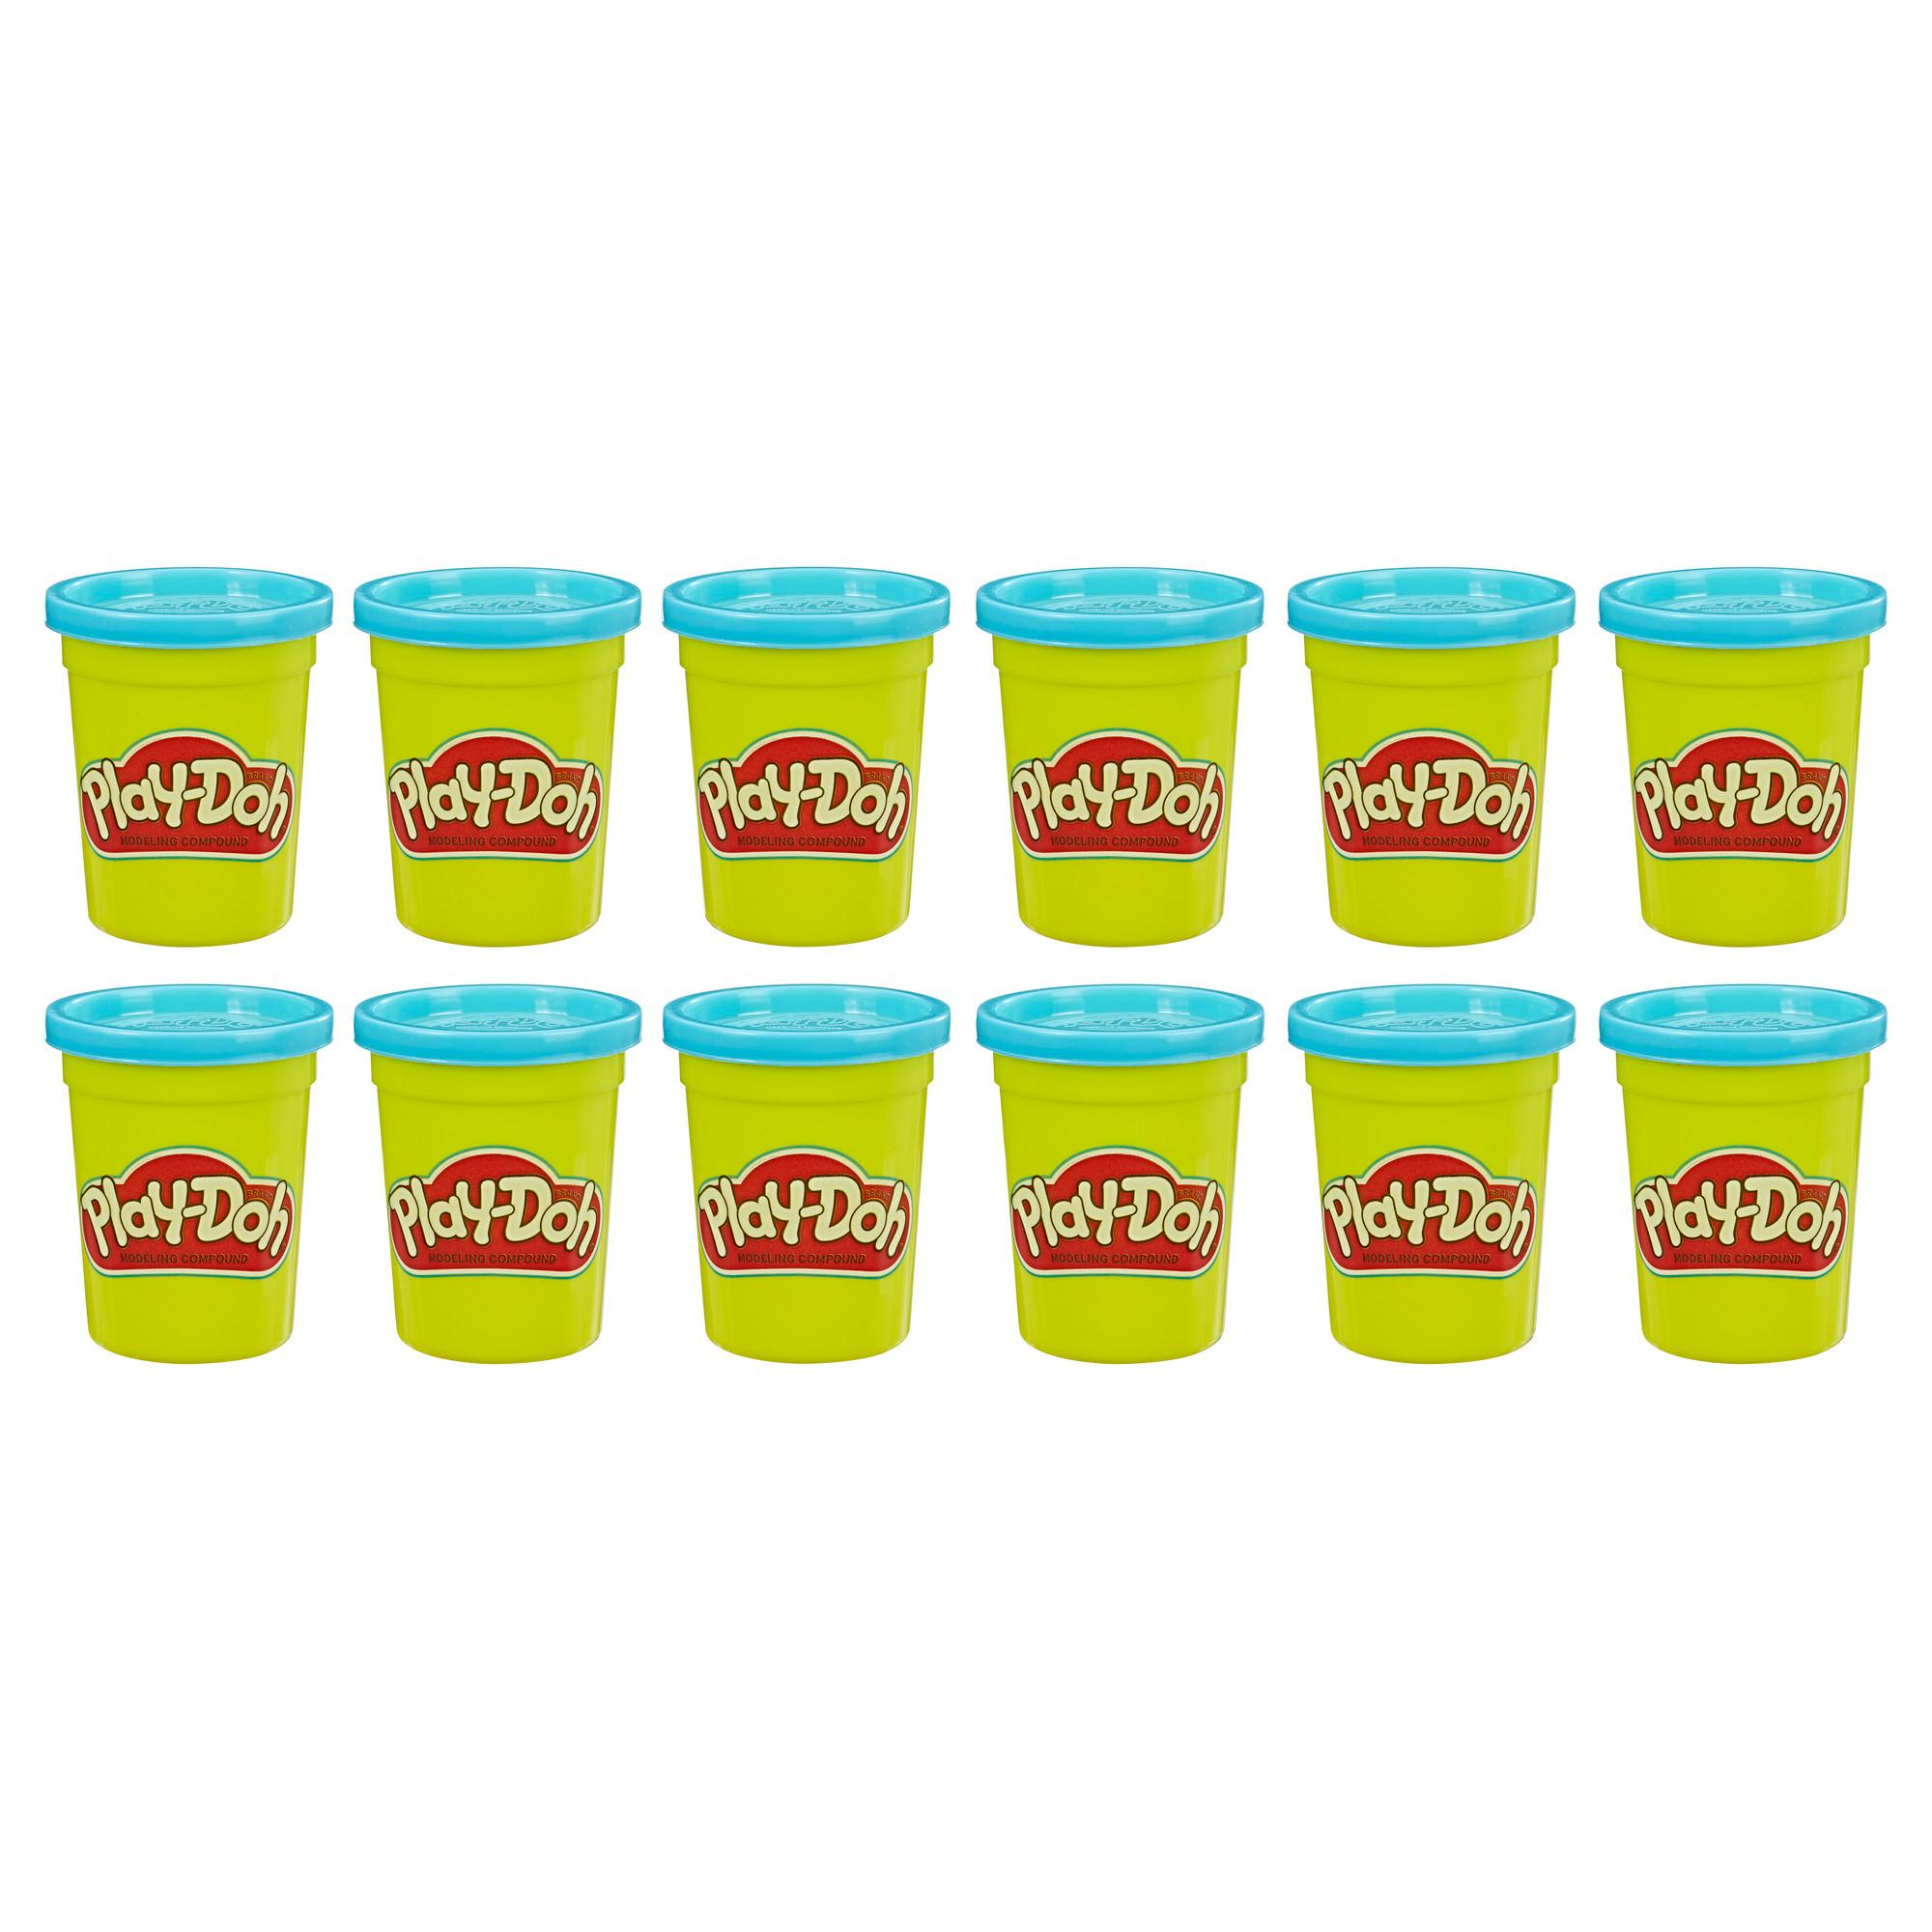 Play-Doh Bulk 12-Pack of Blue Non-Toxic Modeling Compound, 4-Ounce Cans